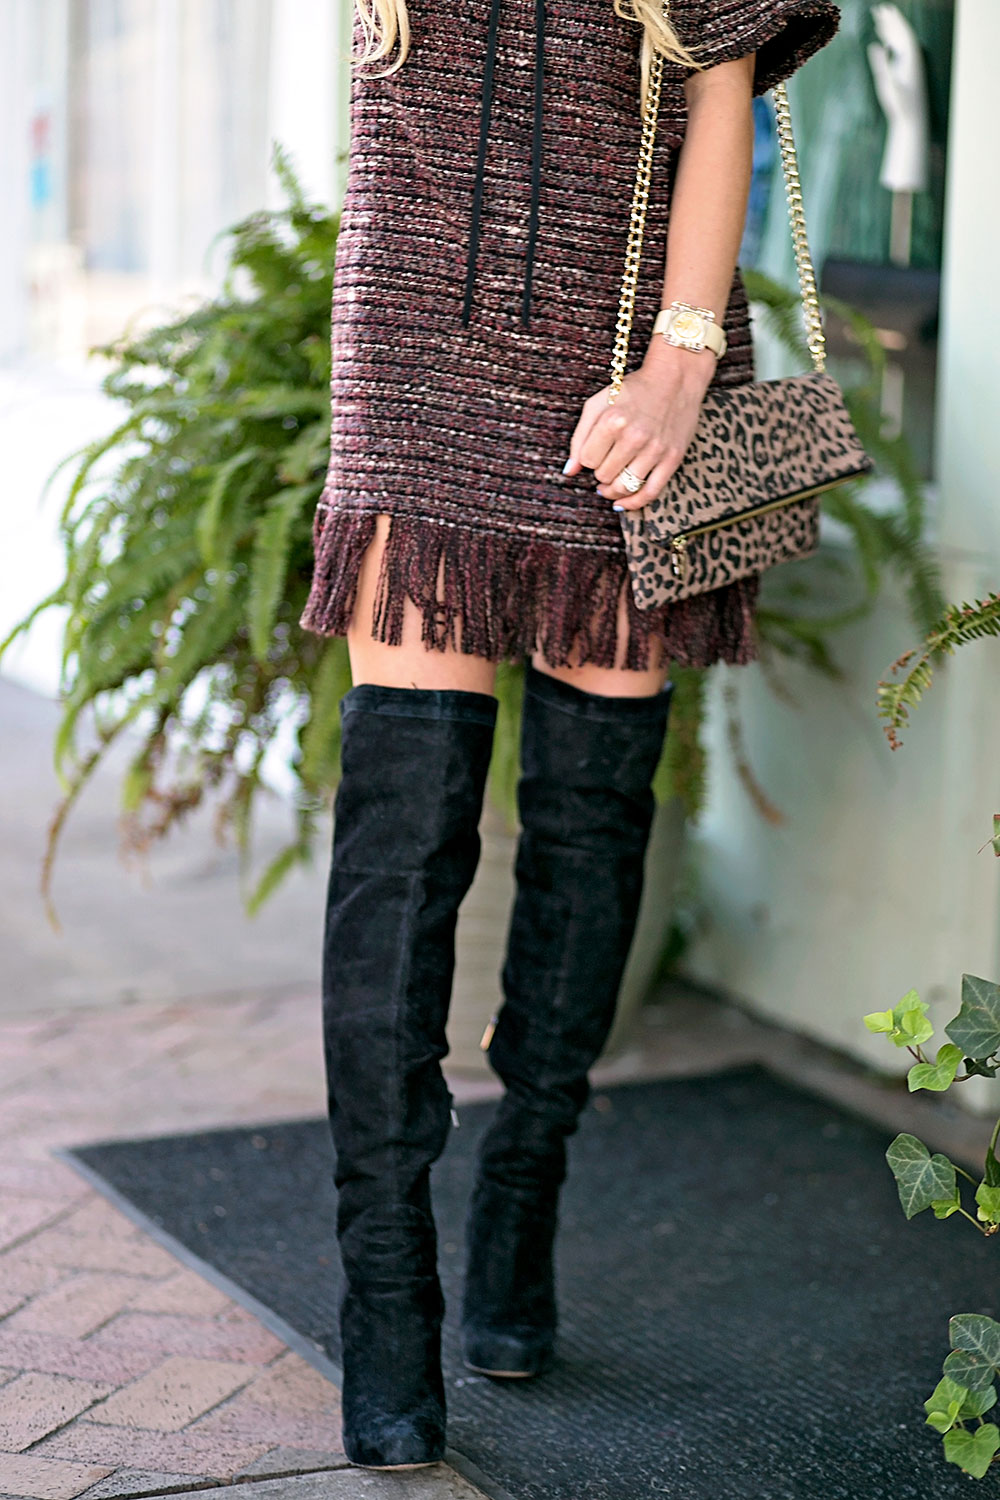 vandi-fair-blog-lauren-vandiver-dallas-texas-southern-fashion-blogger-astr-margo-fringe-shift-hem-dress-wine-over-the-knee-black-boots-1